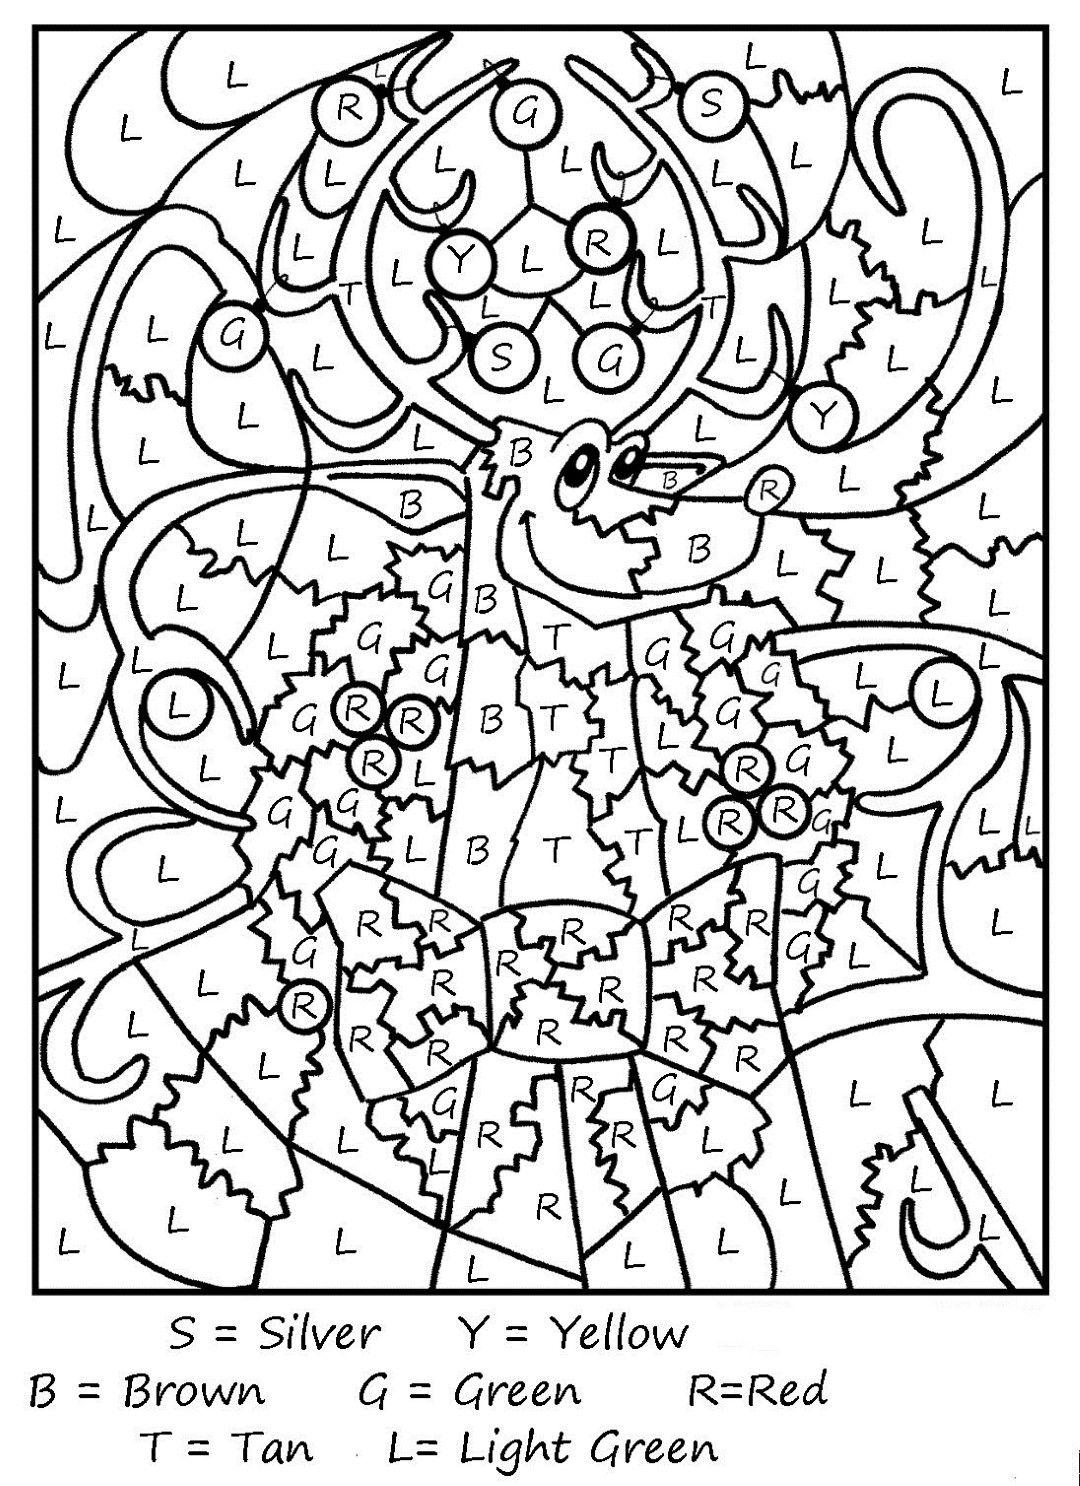 Coloring Rocks Christmas Coloring Pages Christmas Color By Number Coloring Pages For Kids